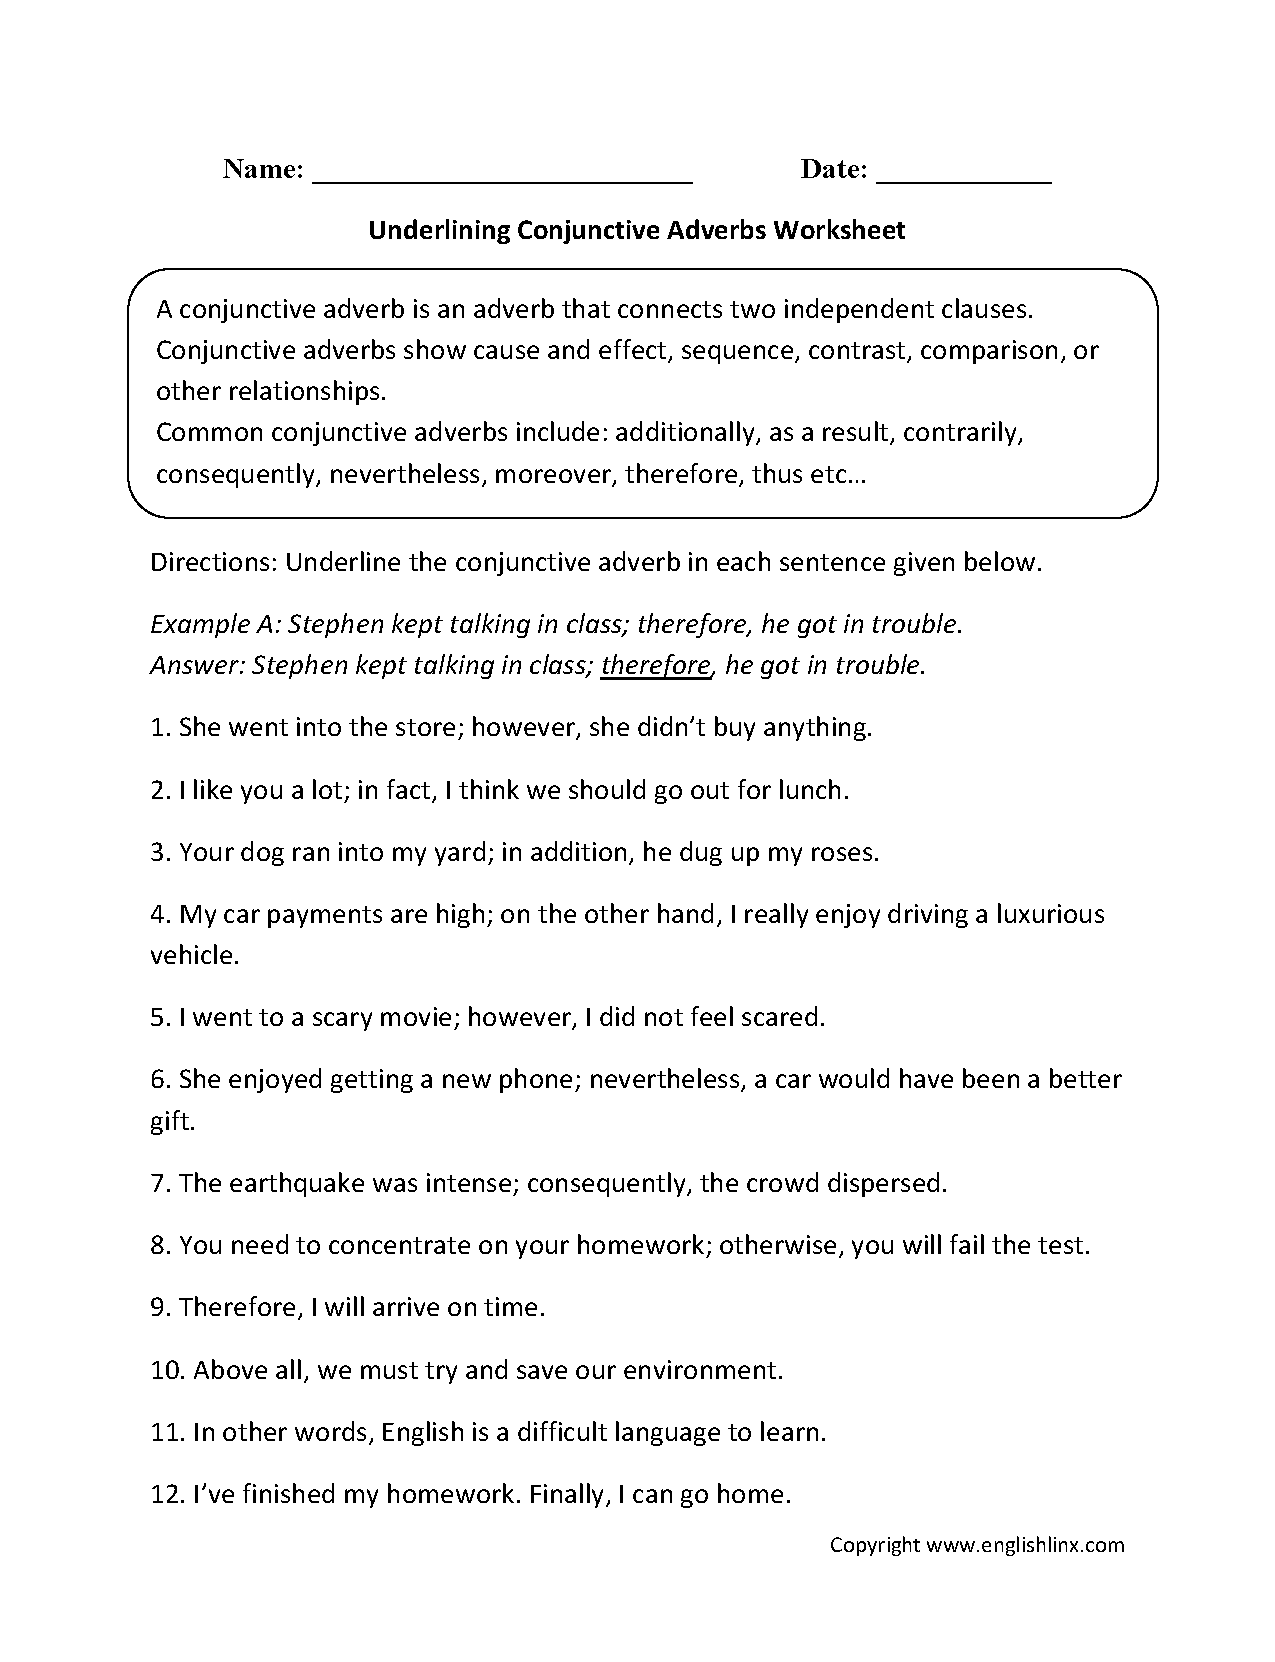 worksheet Identifying Parts Of Speech Worksheet Middle School underlining conjunctive adverbs worksheet tss pinterest this conjunctions directs the student to identify and unerline adverb in each given sentence